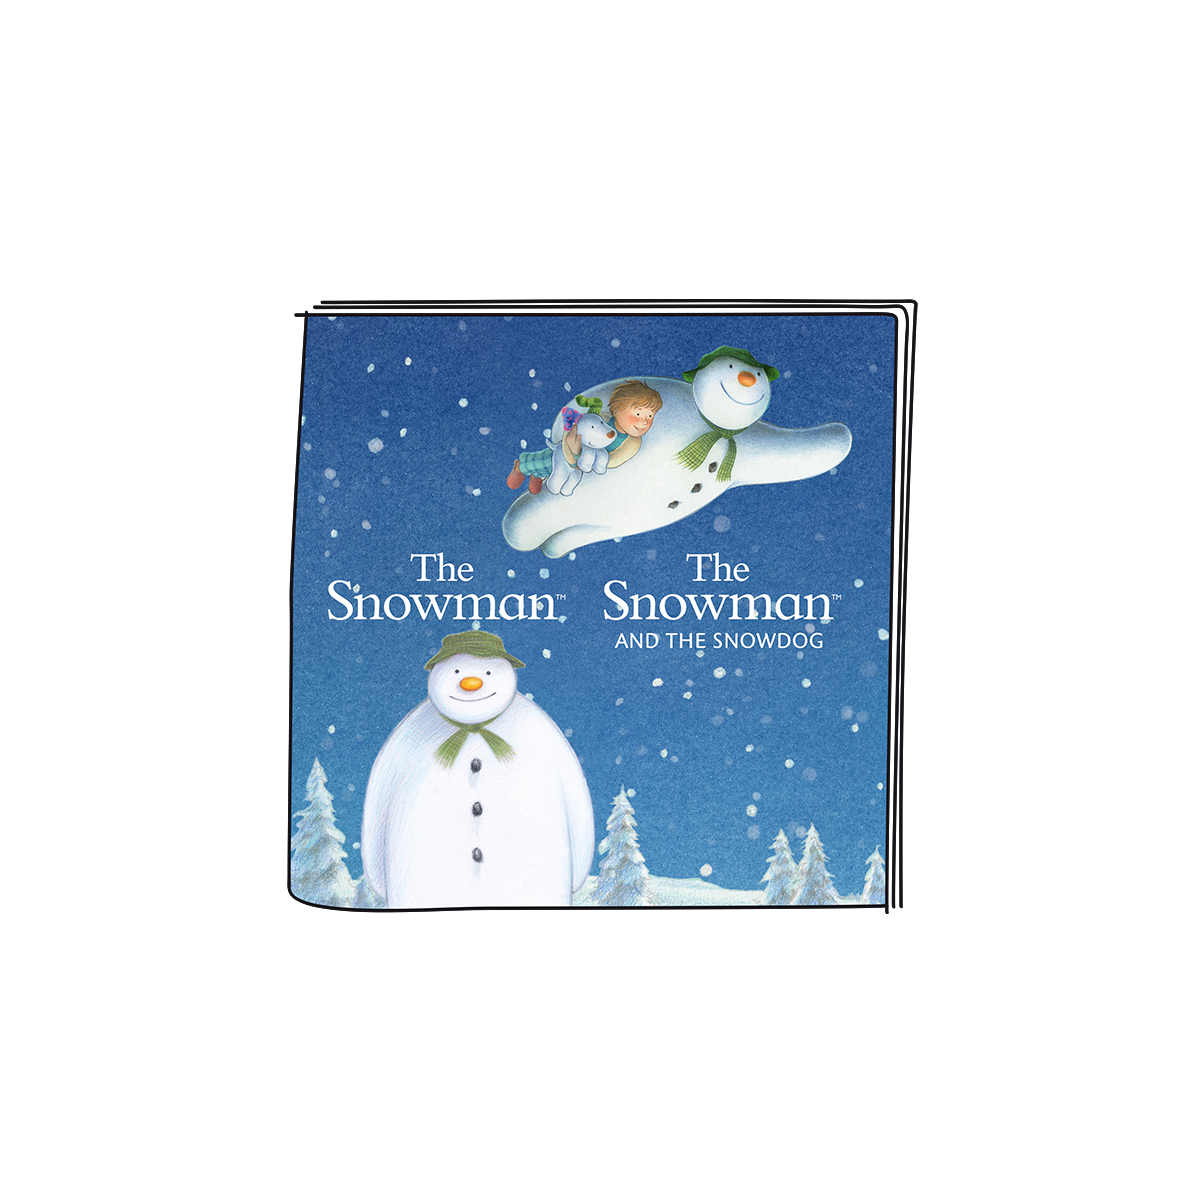 The Snowman - The Snowman and the Snowdog